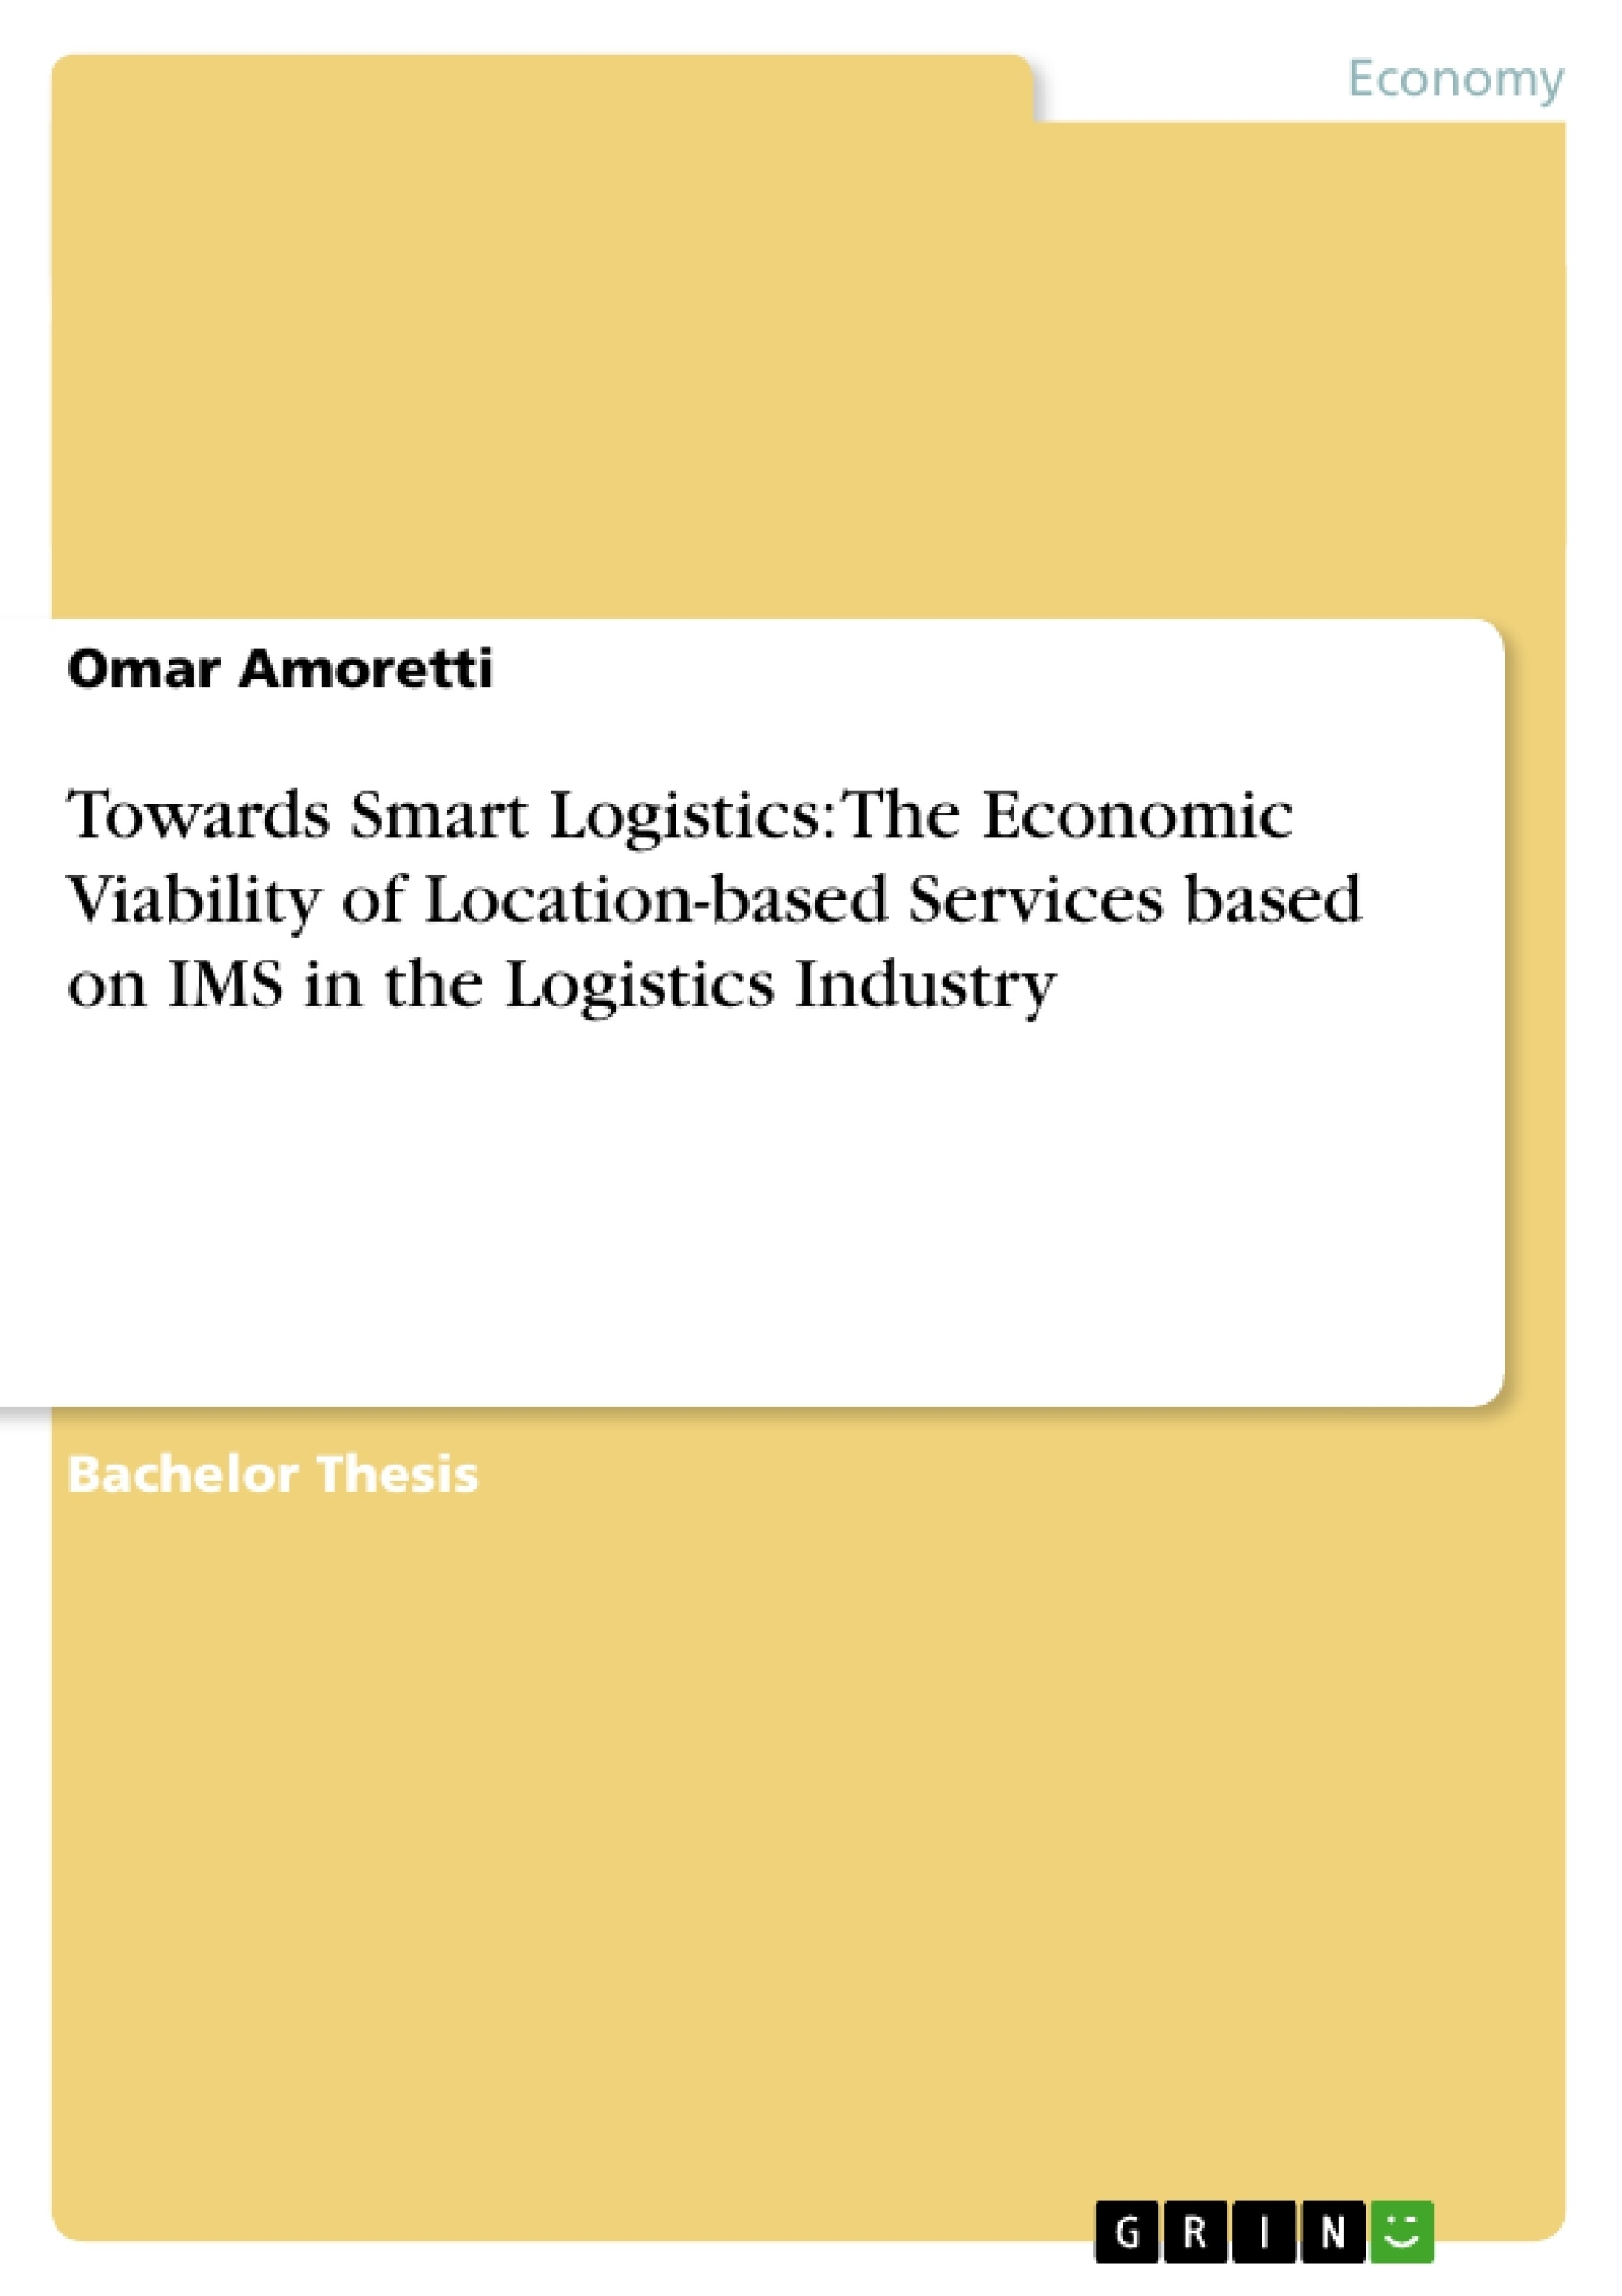 Title: Towards Smart Logistics: The Economic Viability of Location-based Services based on IMS in the Logistics Industry